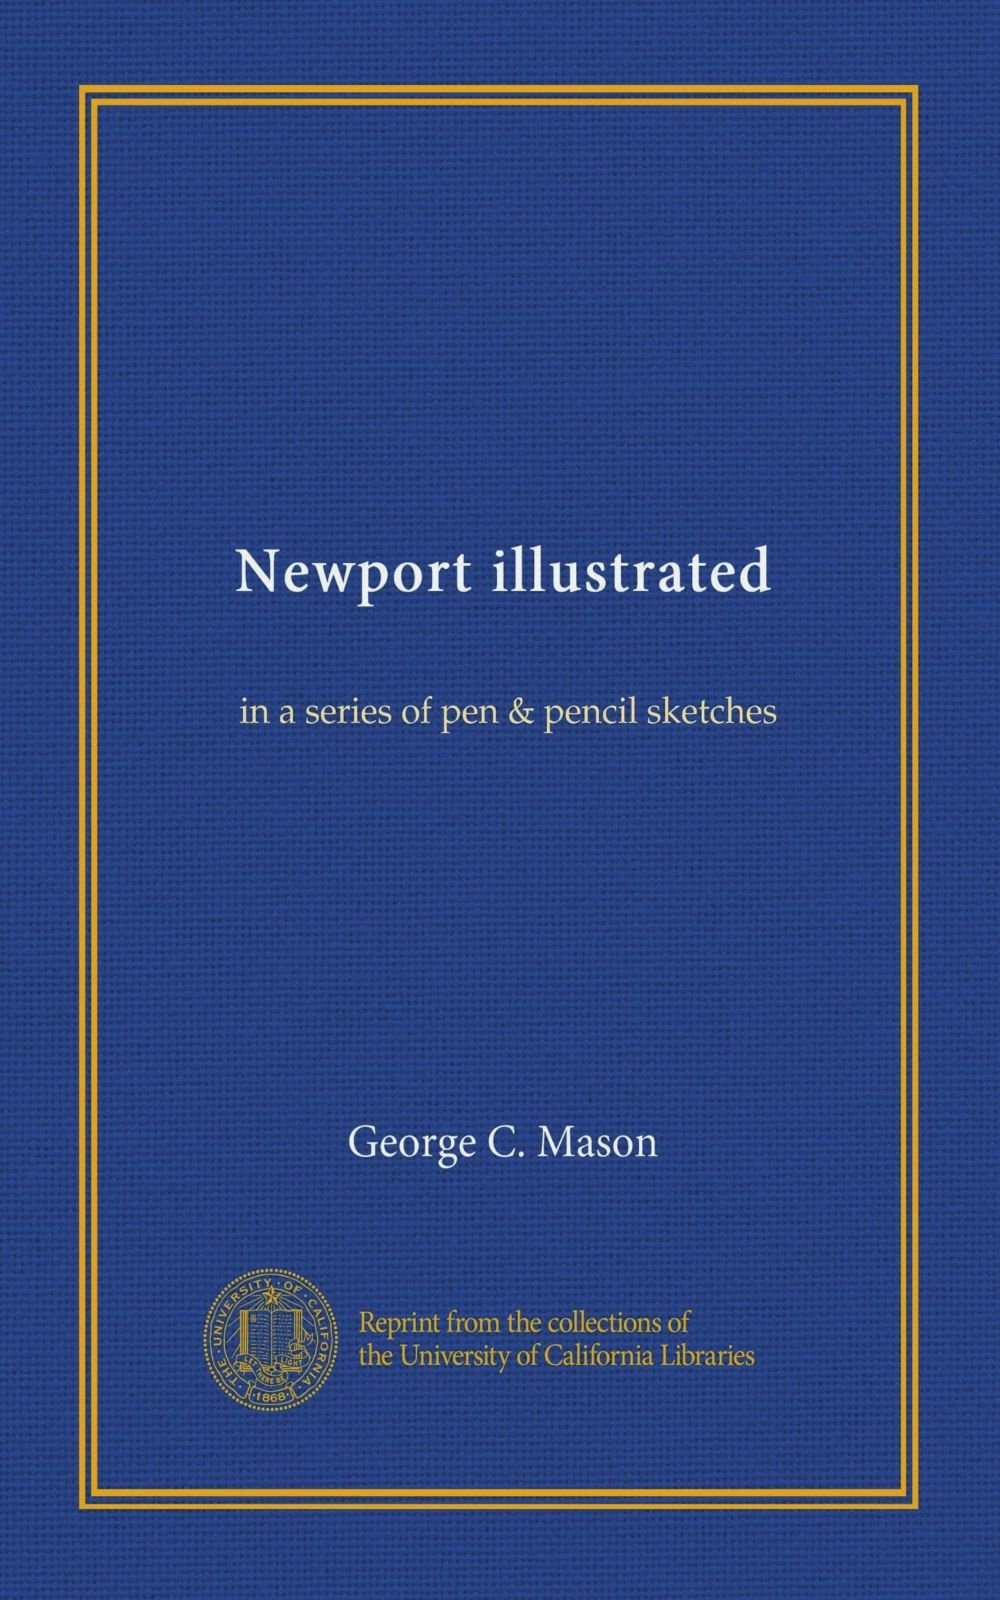 Download Newport illustrated: in a series of pen & pencil sketches ebook